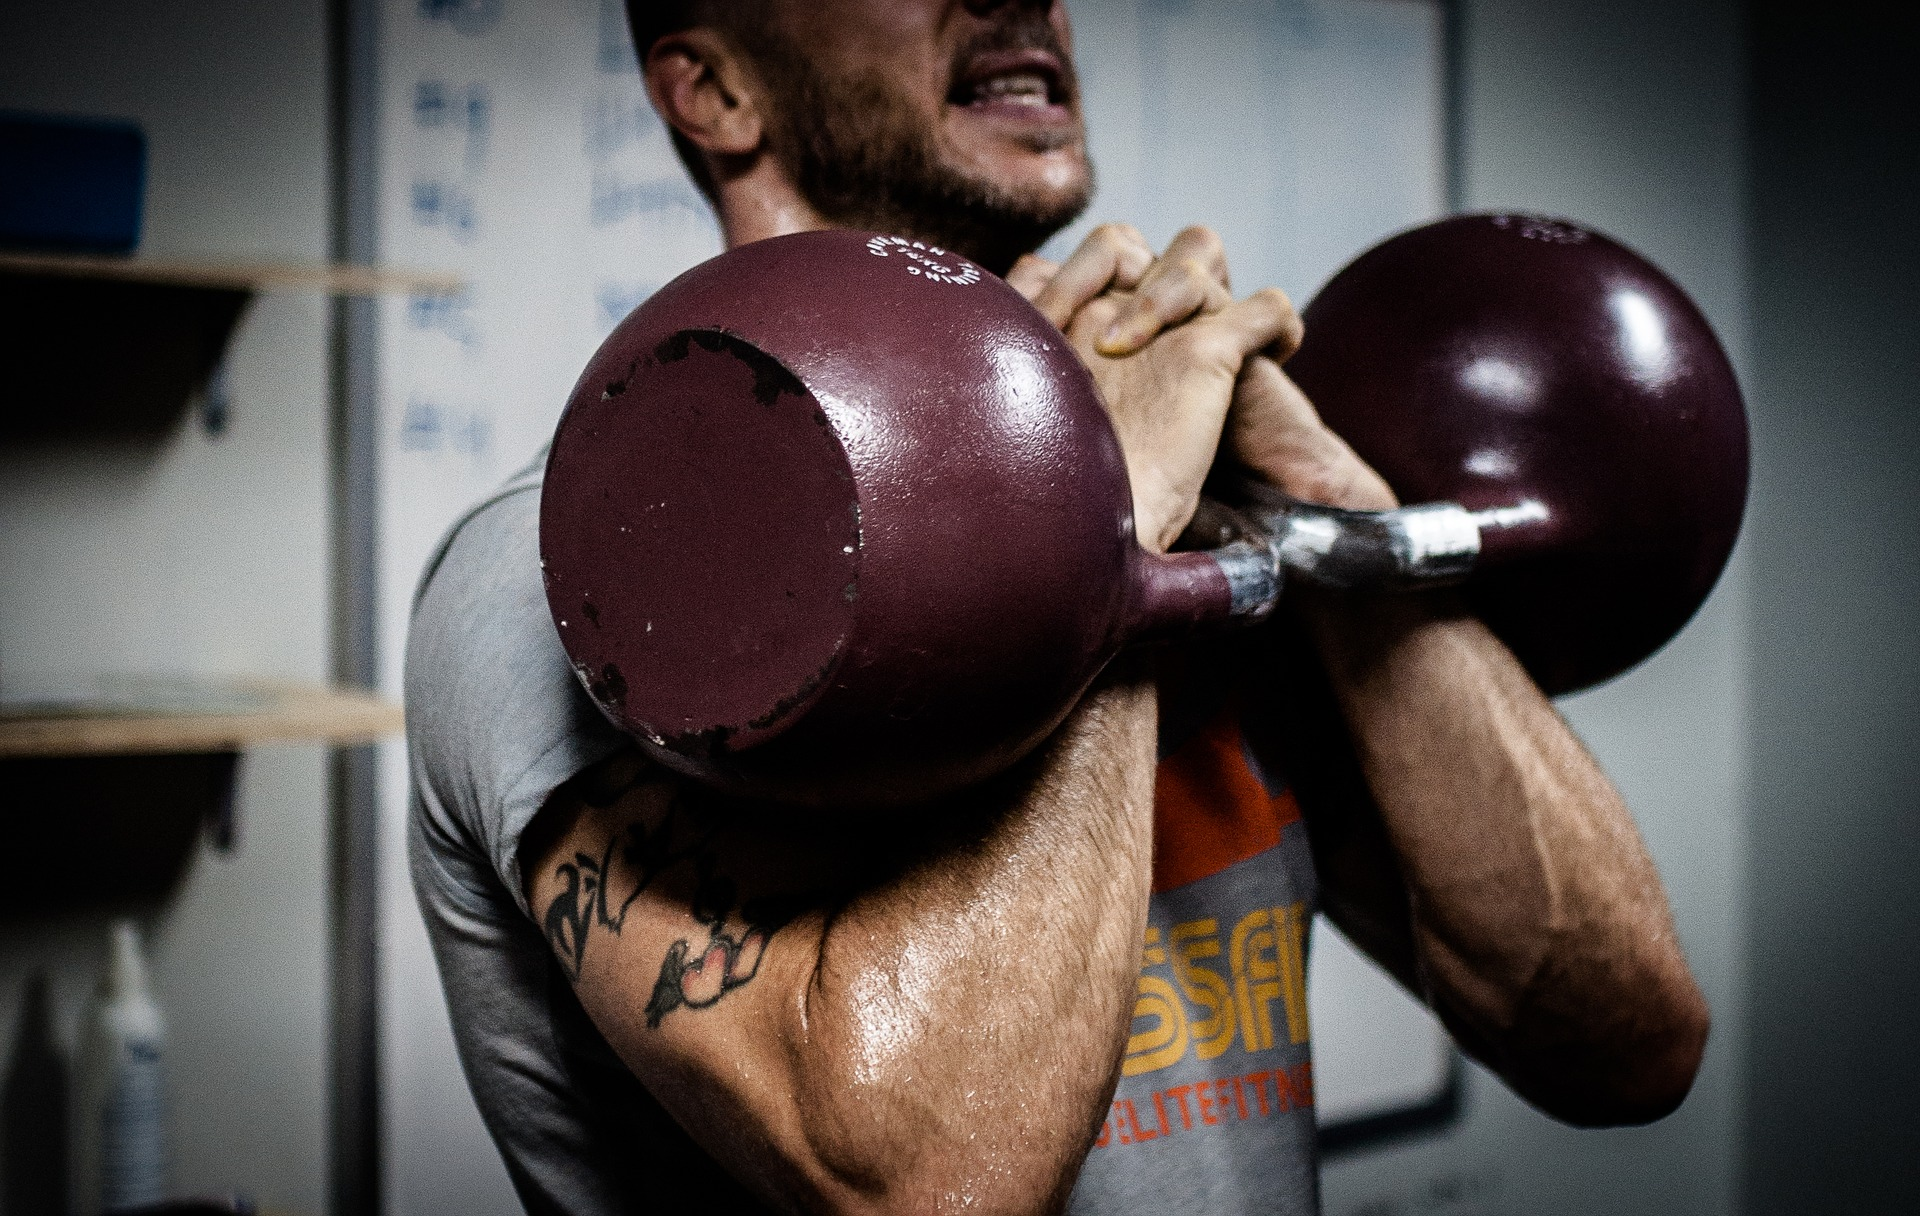 Training with the right number of repetitions